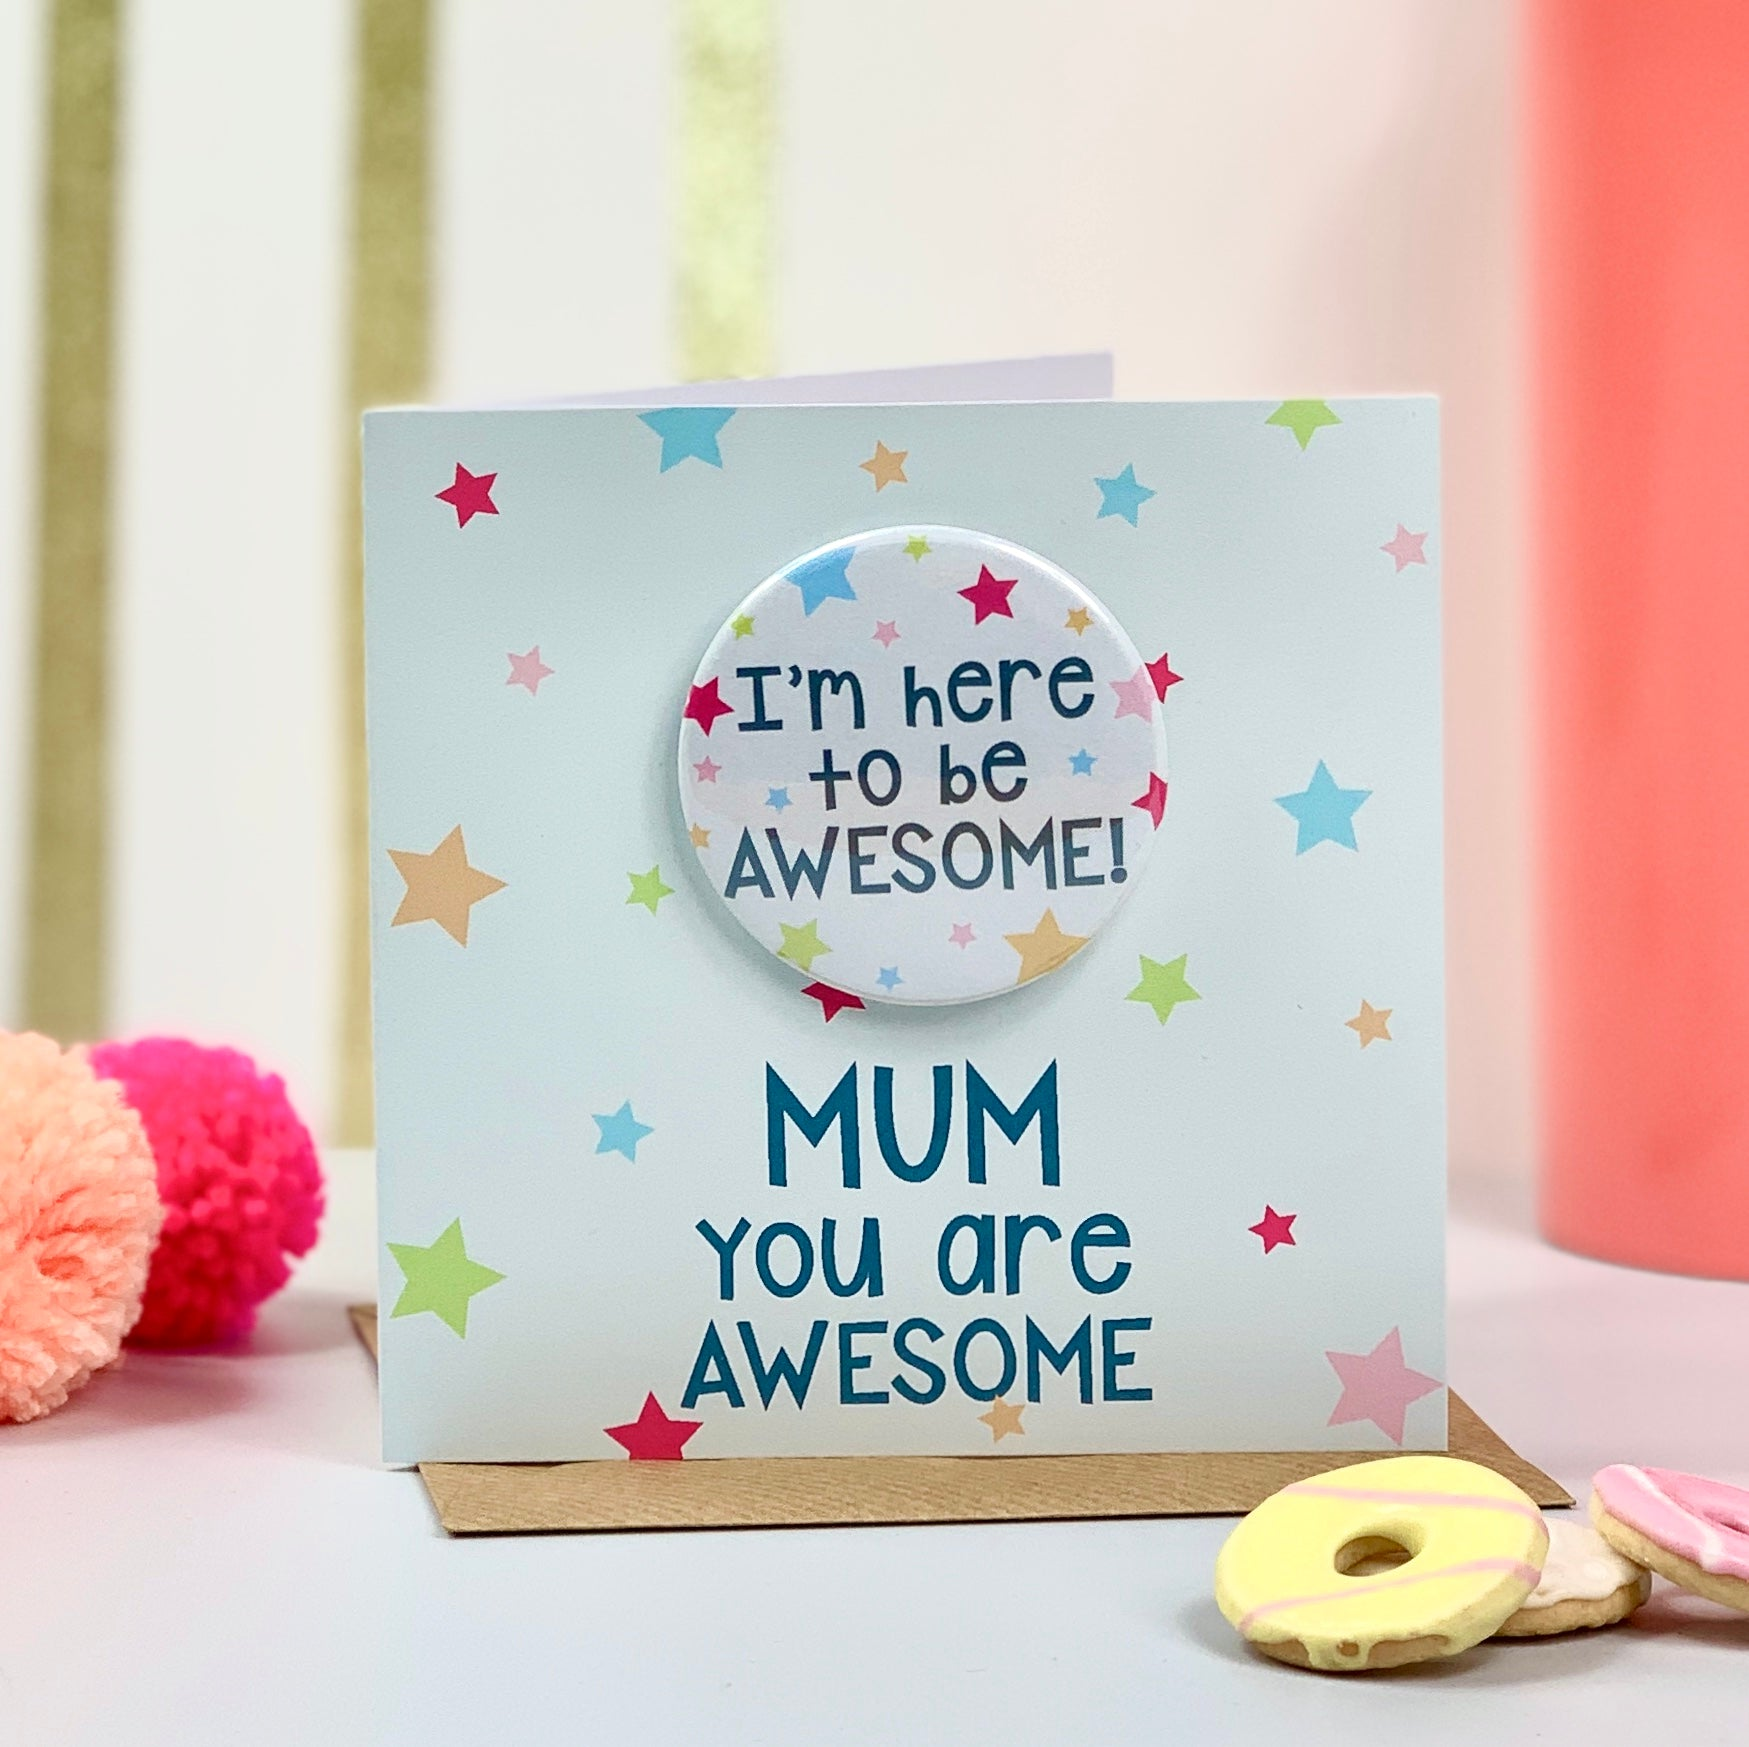 You Are Awesome Mother's Day Card